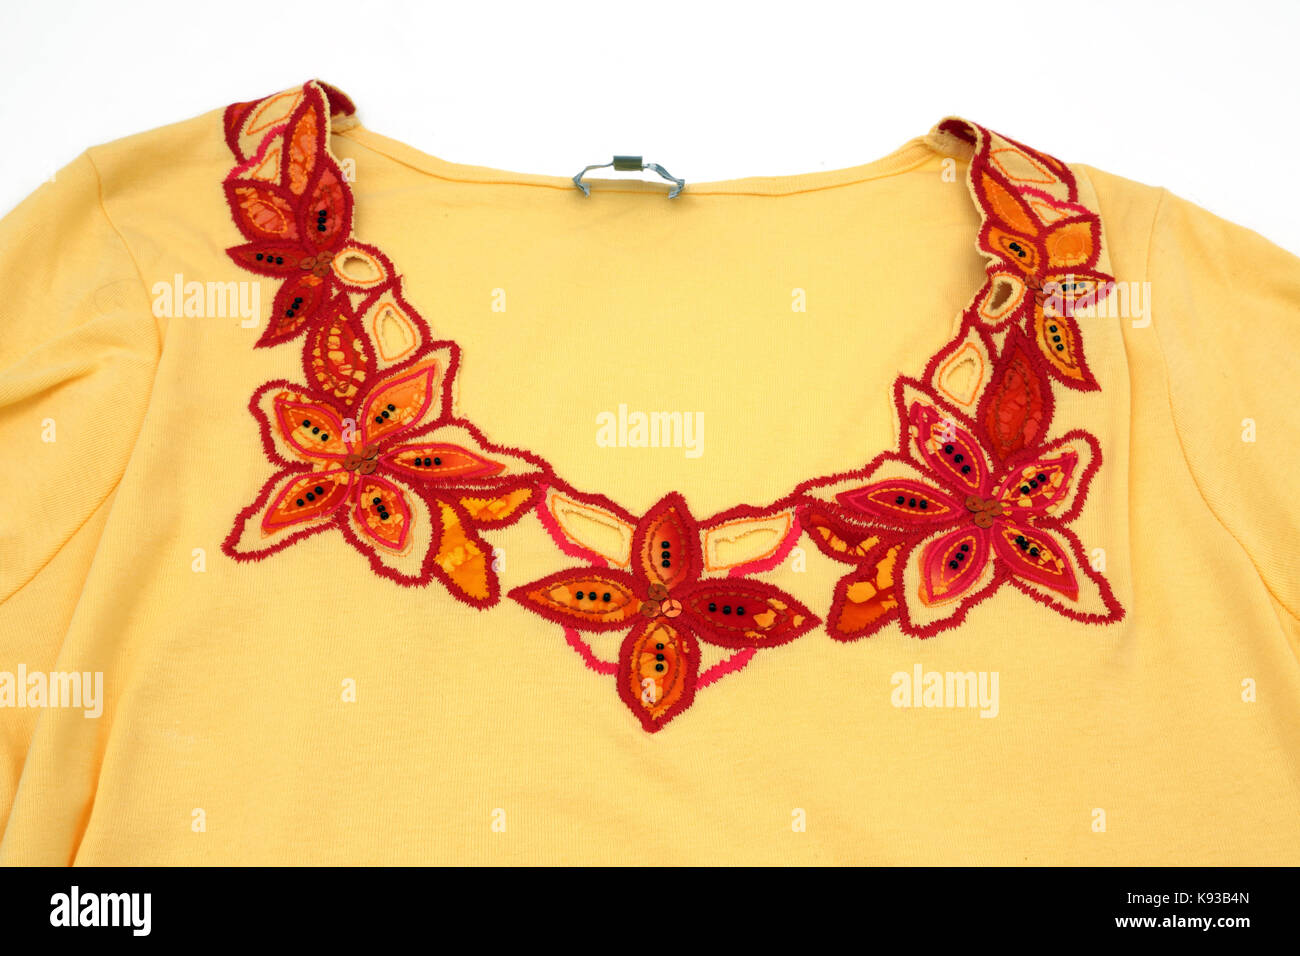 Embroidery Design Stock Photos Embroidery Design Stock Images Alamy